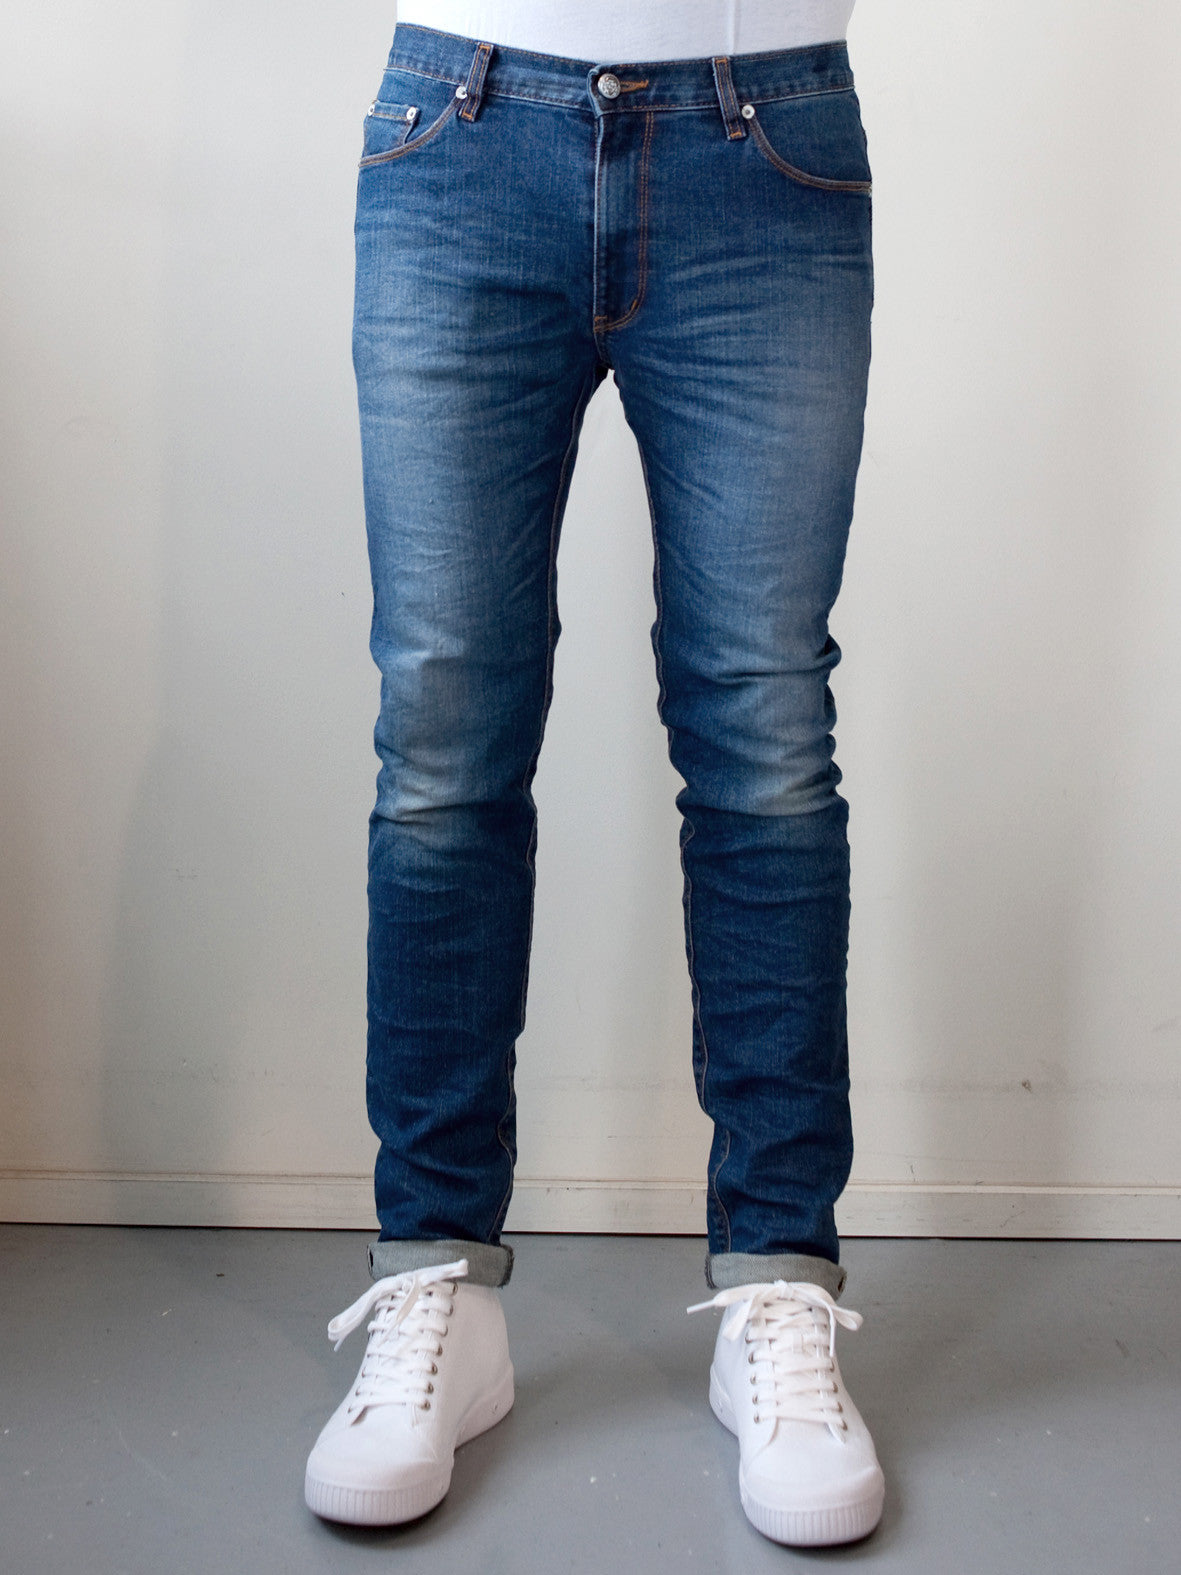 No 8 WASH. SKINNY FIT JEANS